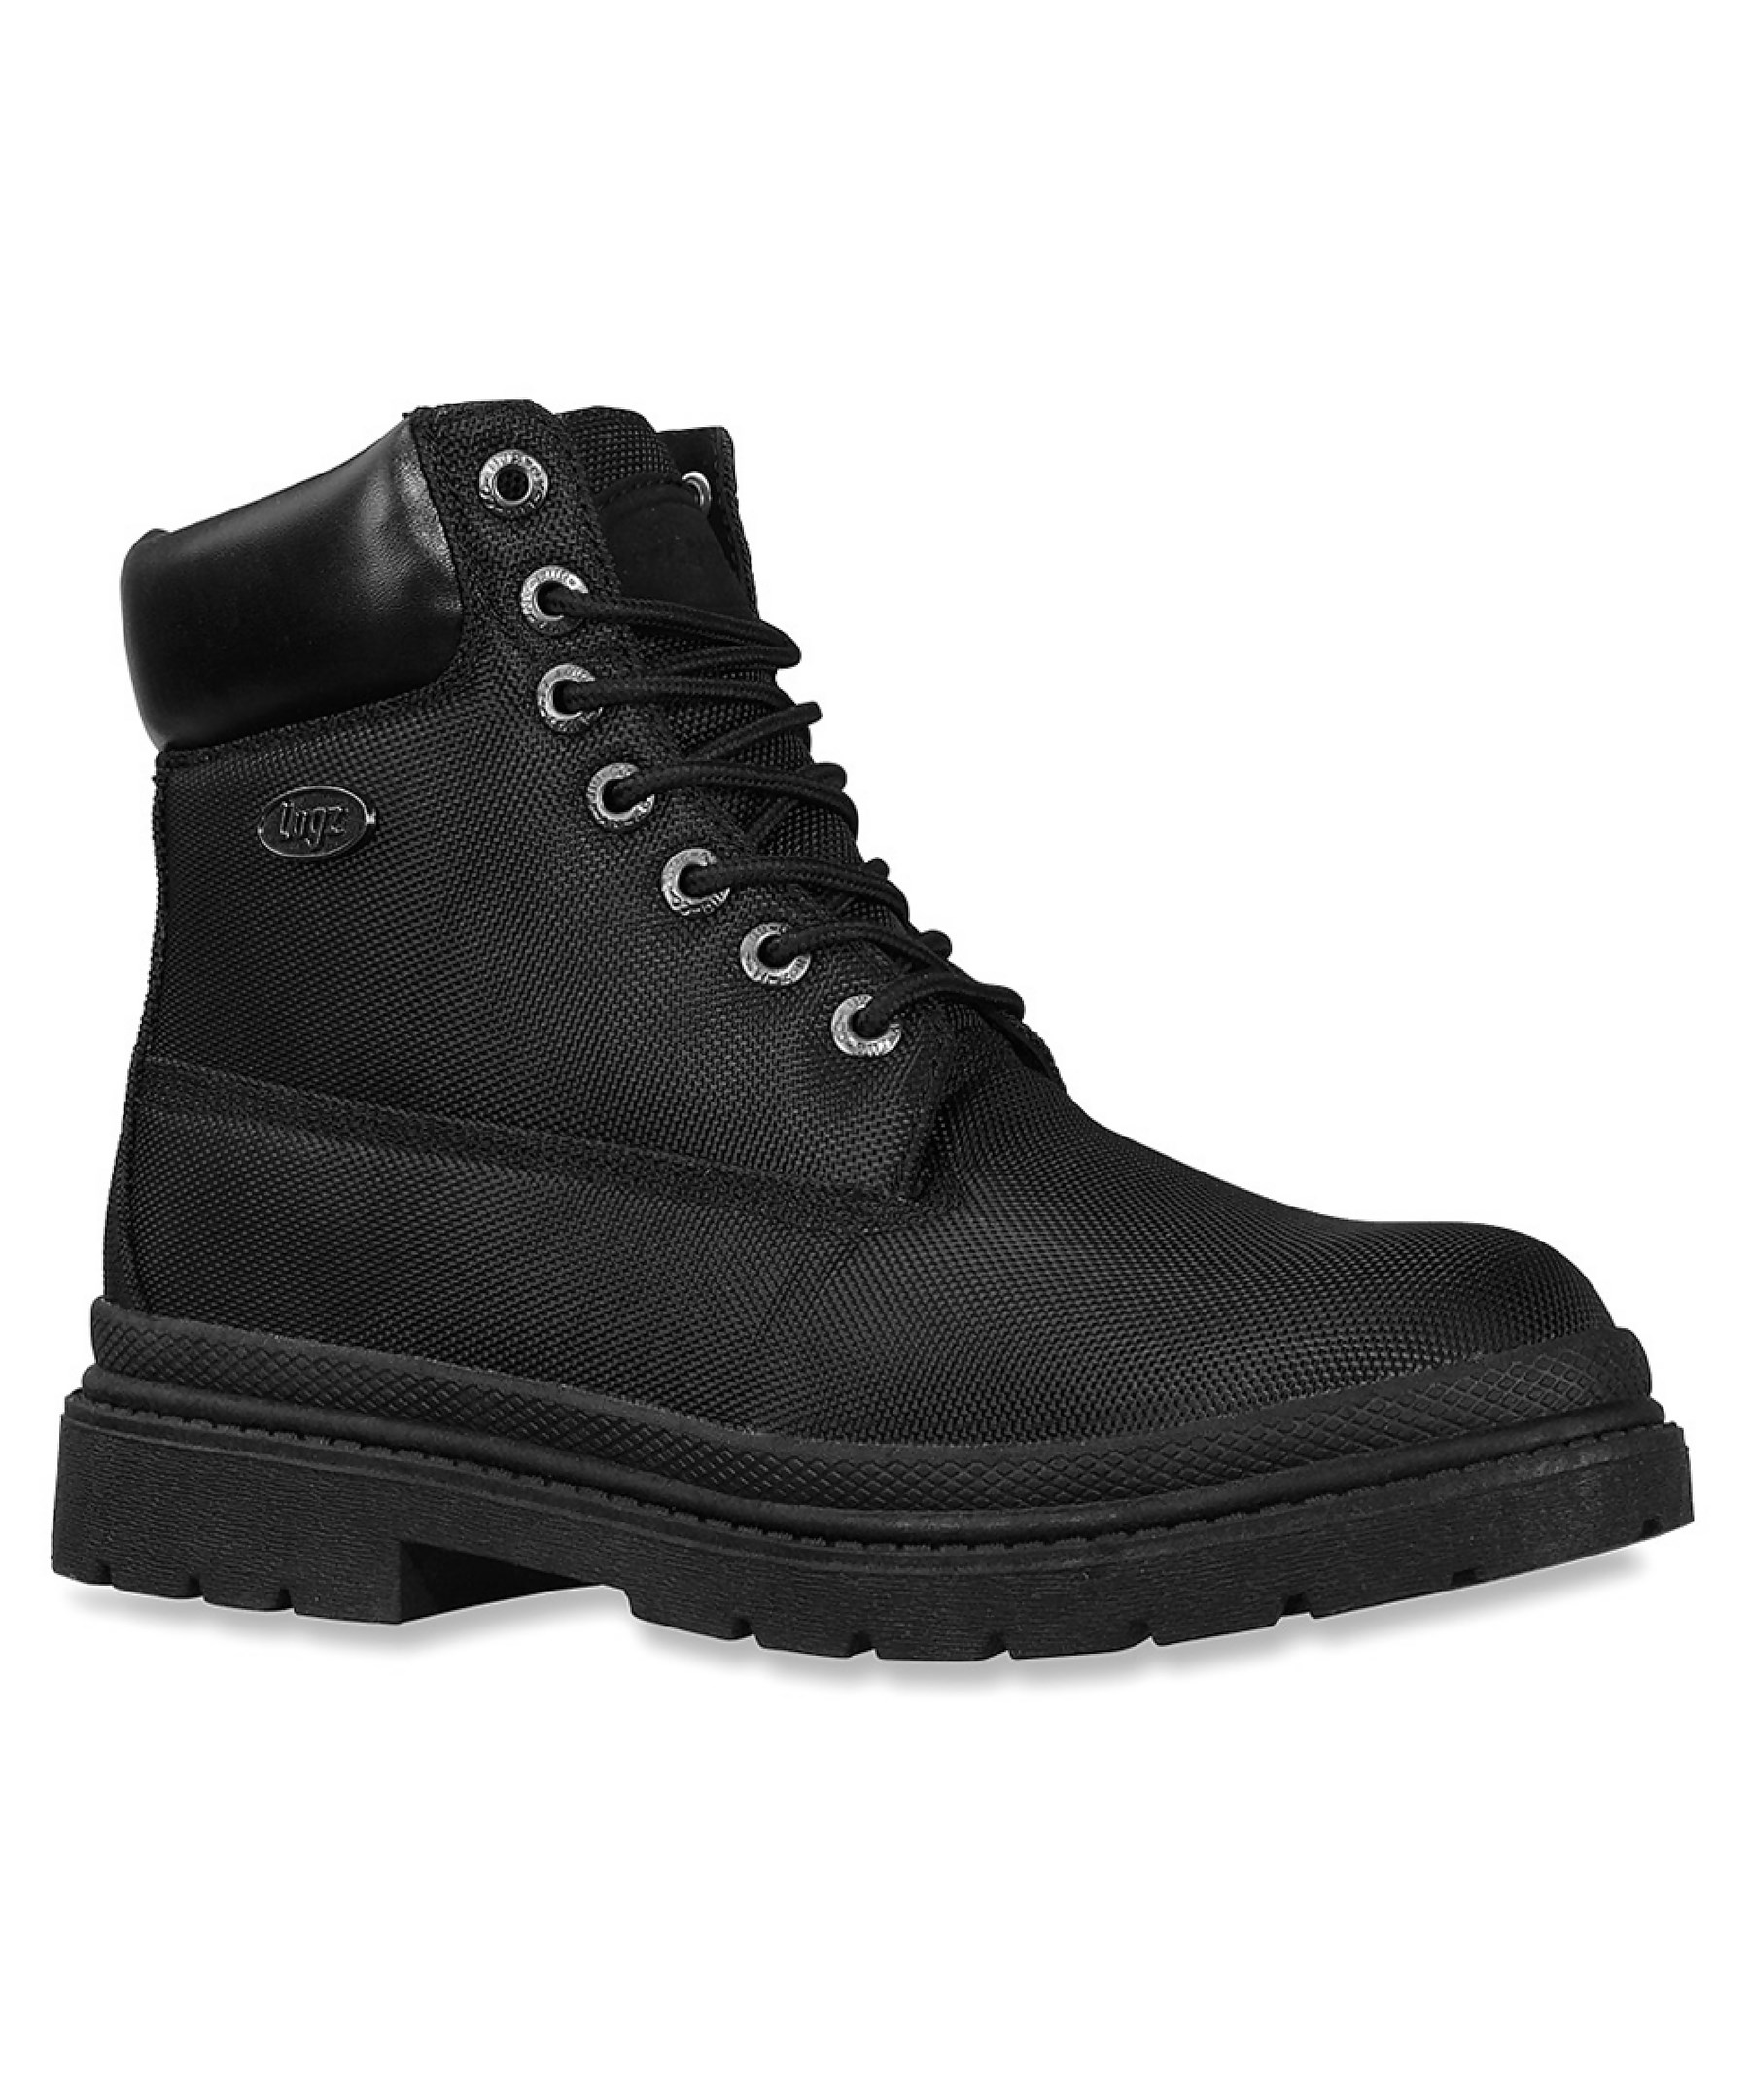 lugz s drifter 6 ballistic boots in black for lyst